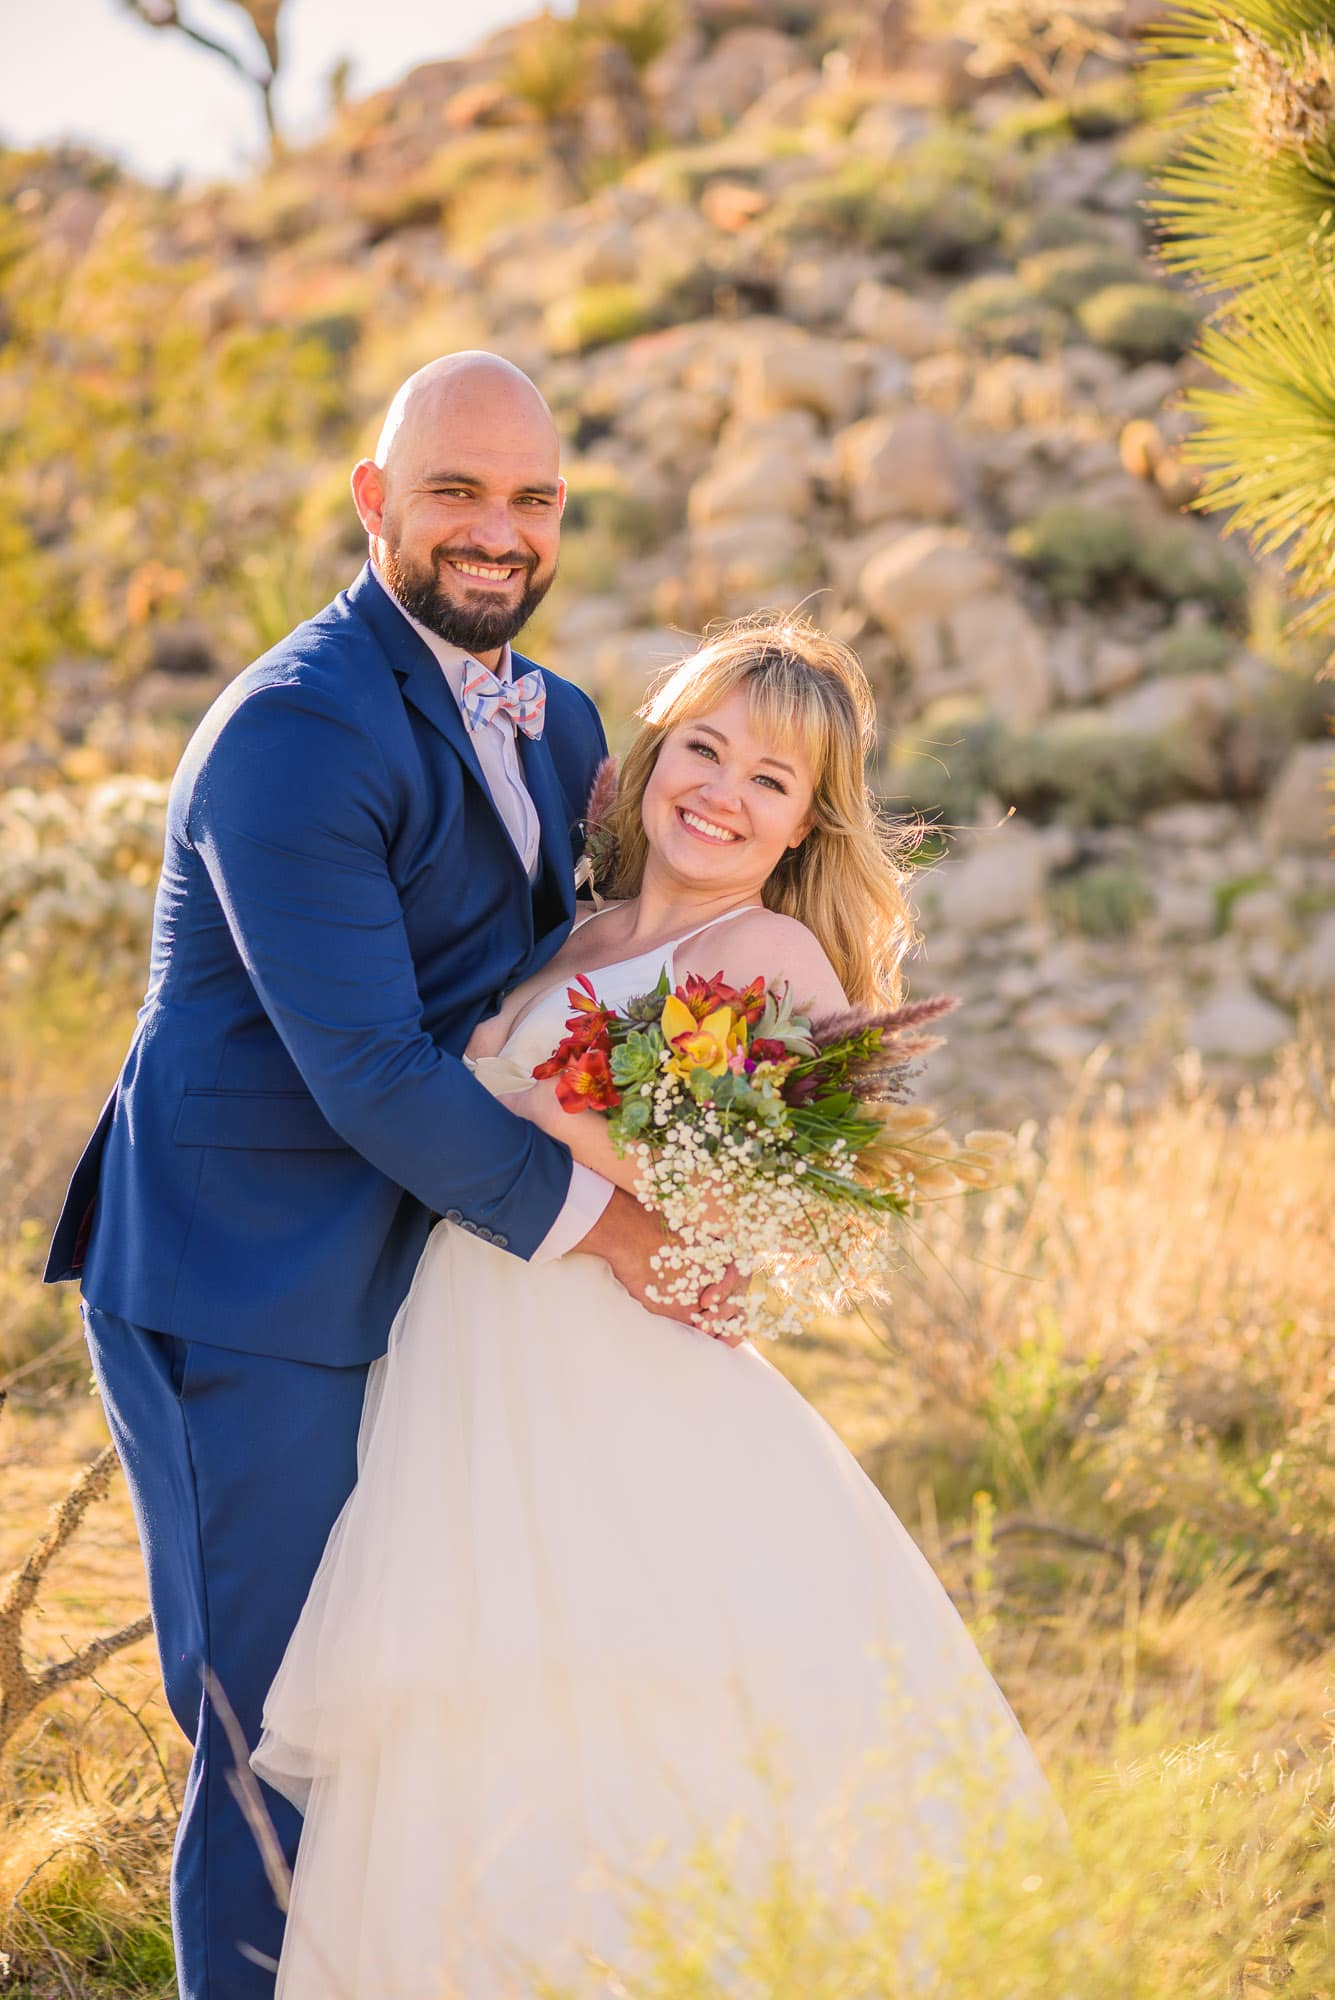 039_Alan_and_Heidi_Joshua_Tree_Spring_Elopement